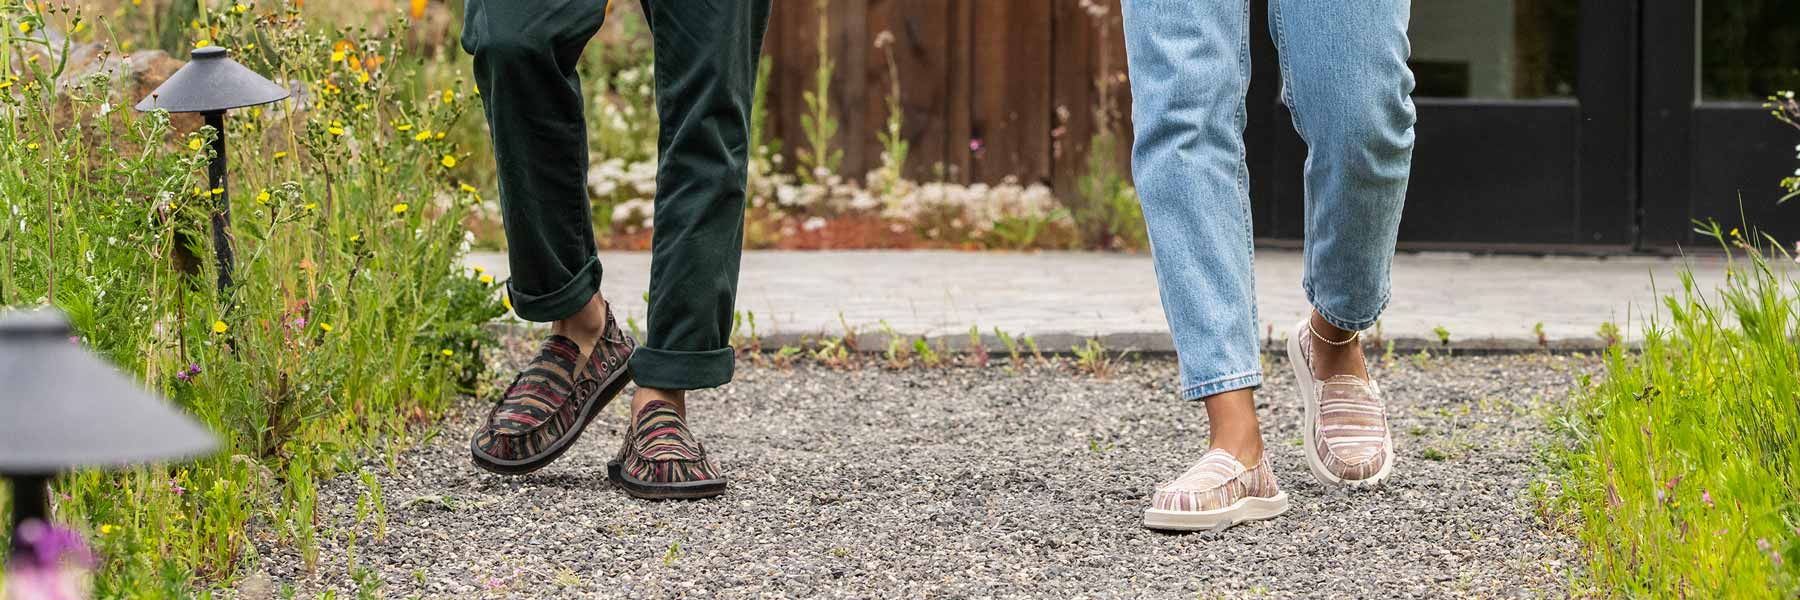 Close up of two people's legs, wearing Sanuk Shoes, walking down a path.